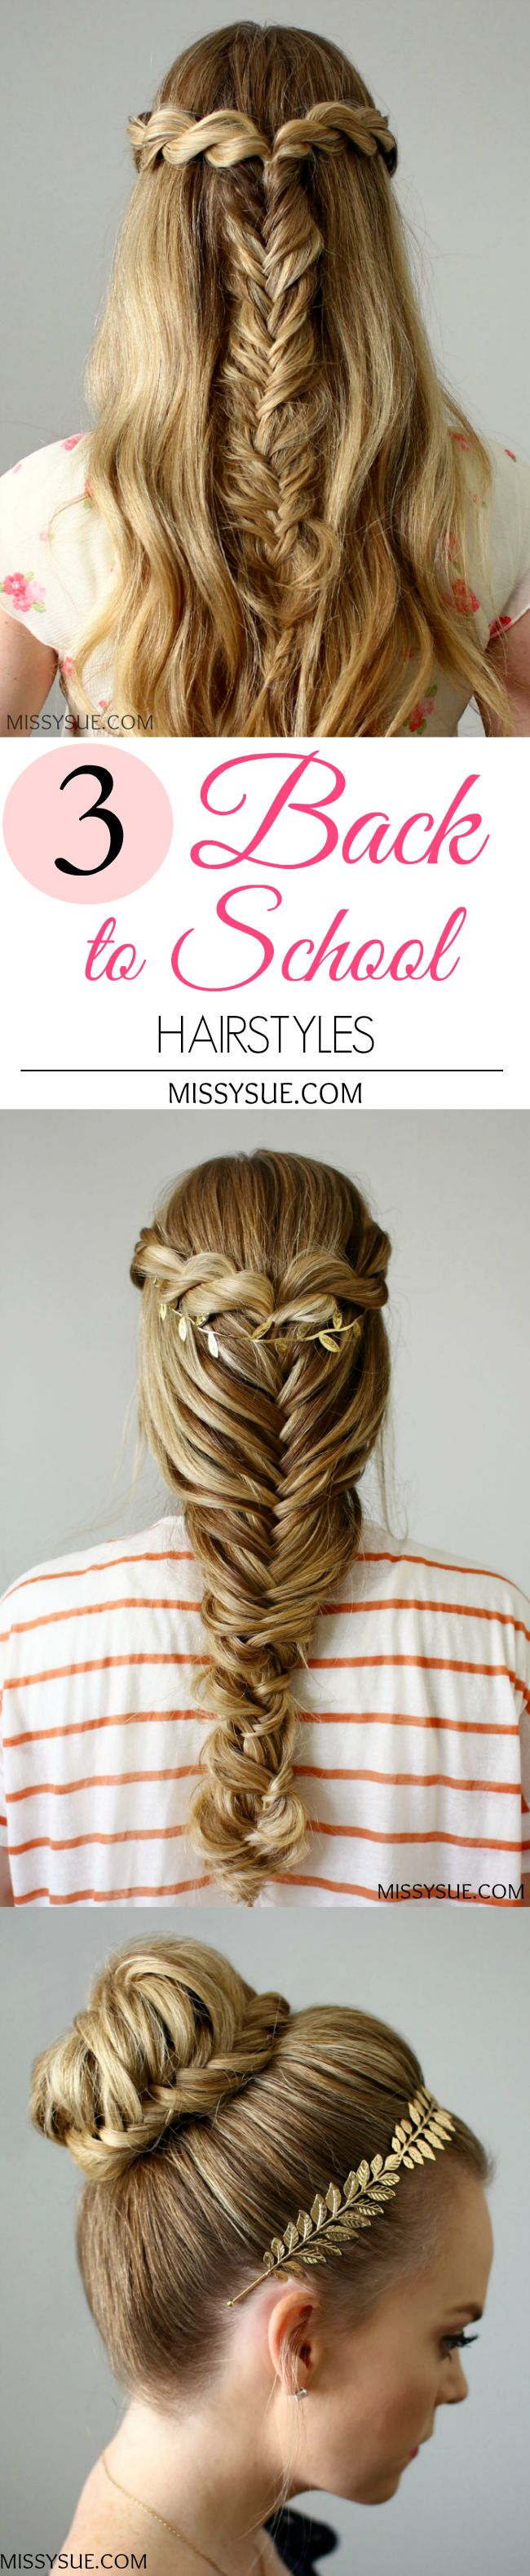 130 best Back to School Hair images on Pinterest